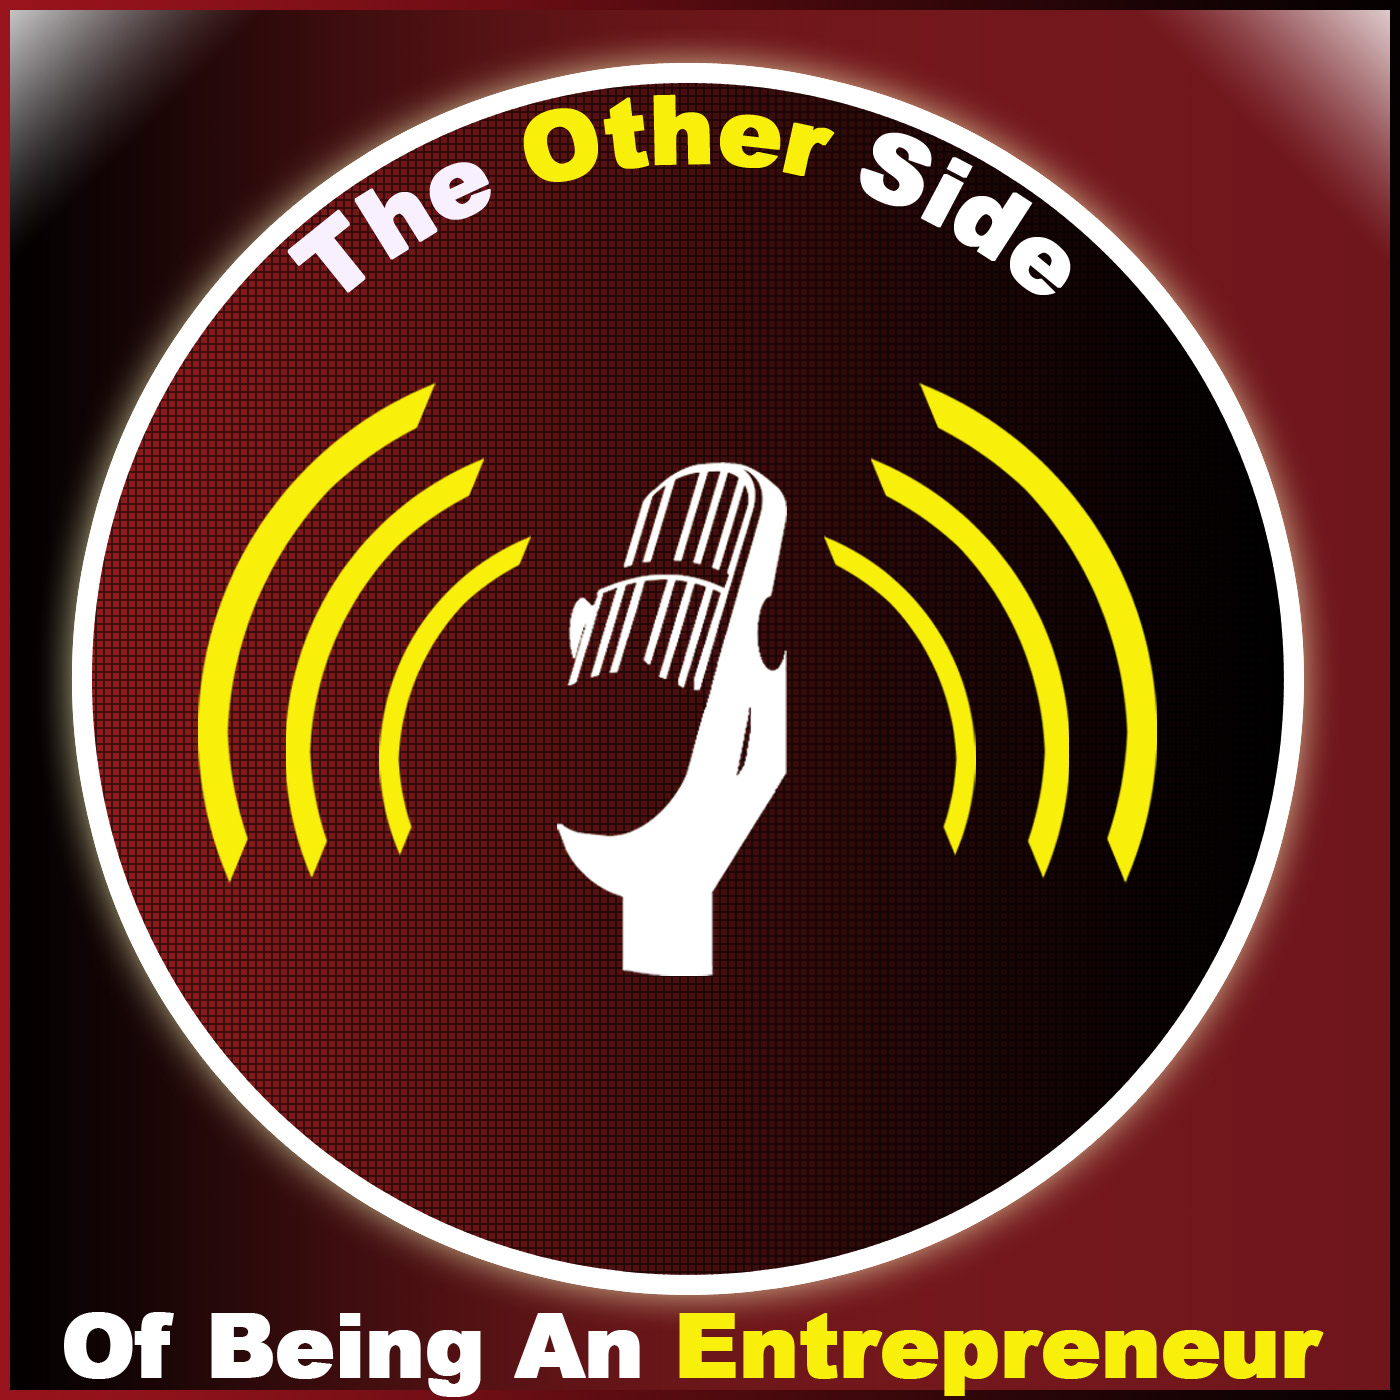 The Other Side Of Being An Entrepreneur - The Real Truths About What Entrepreneurs Go Through To Reach Their Dreams